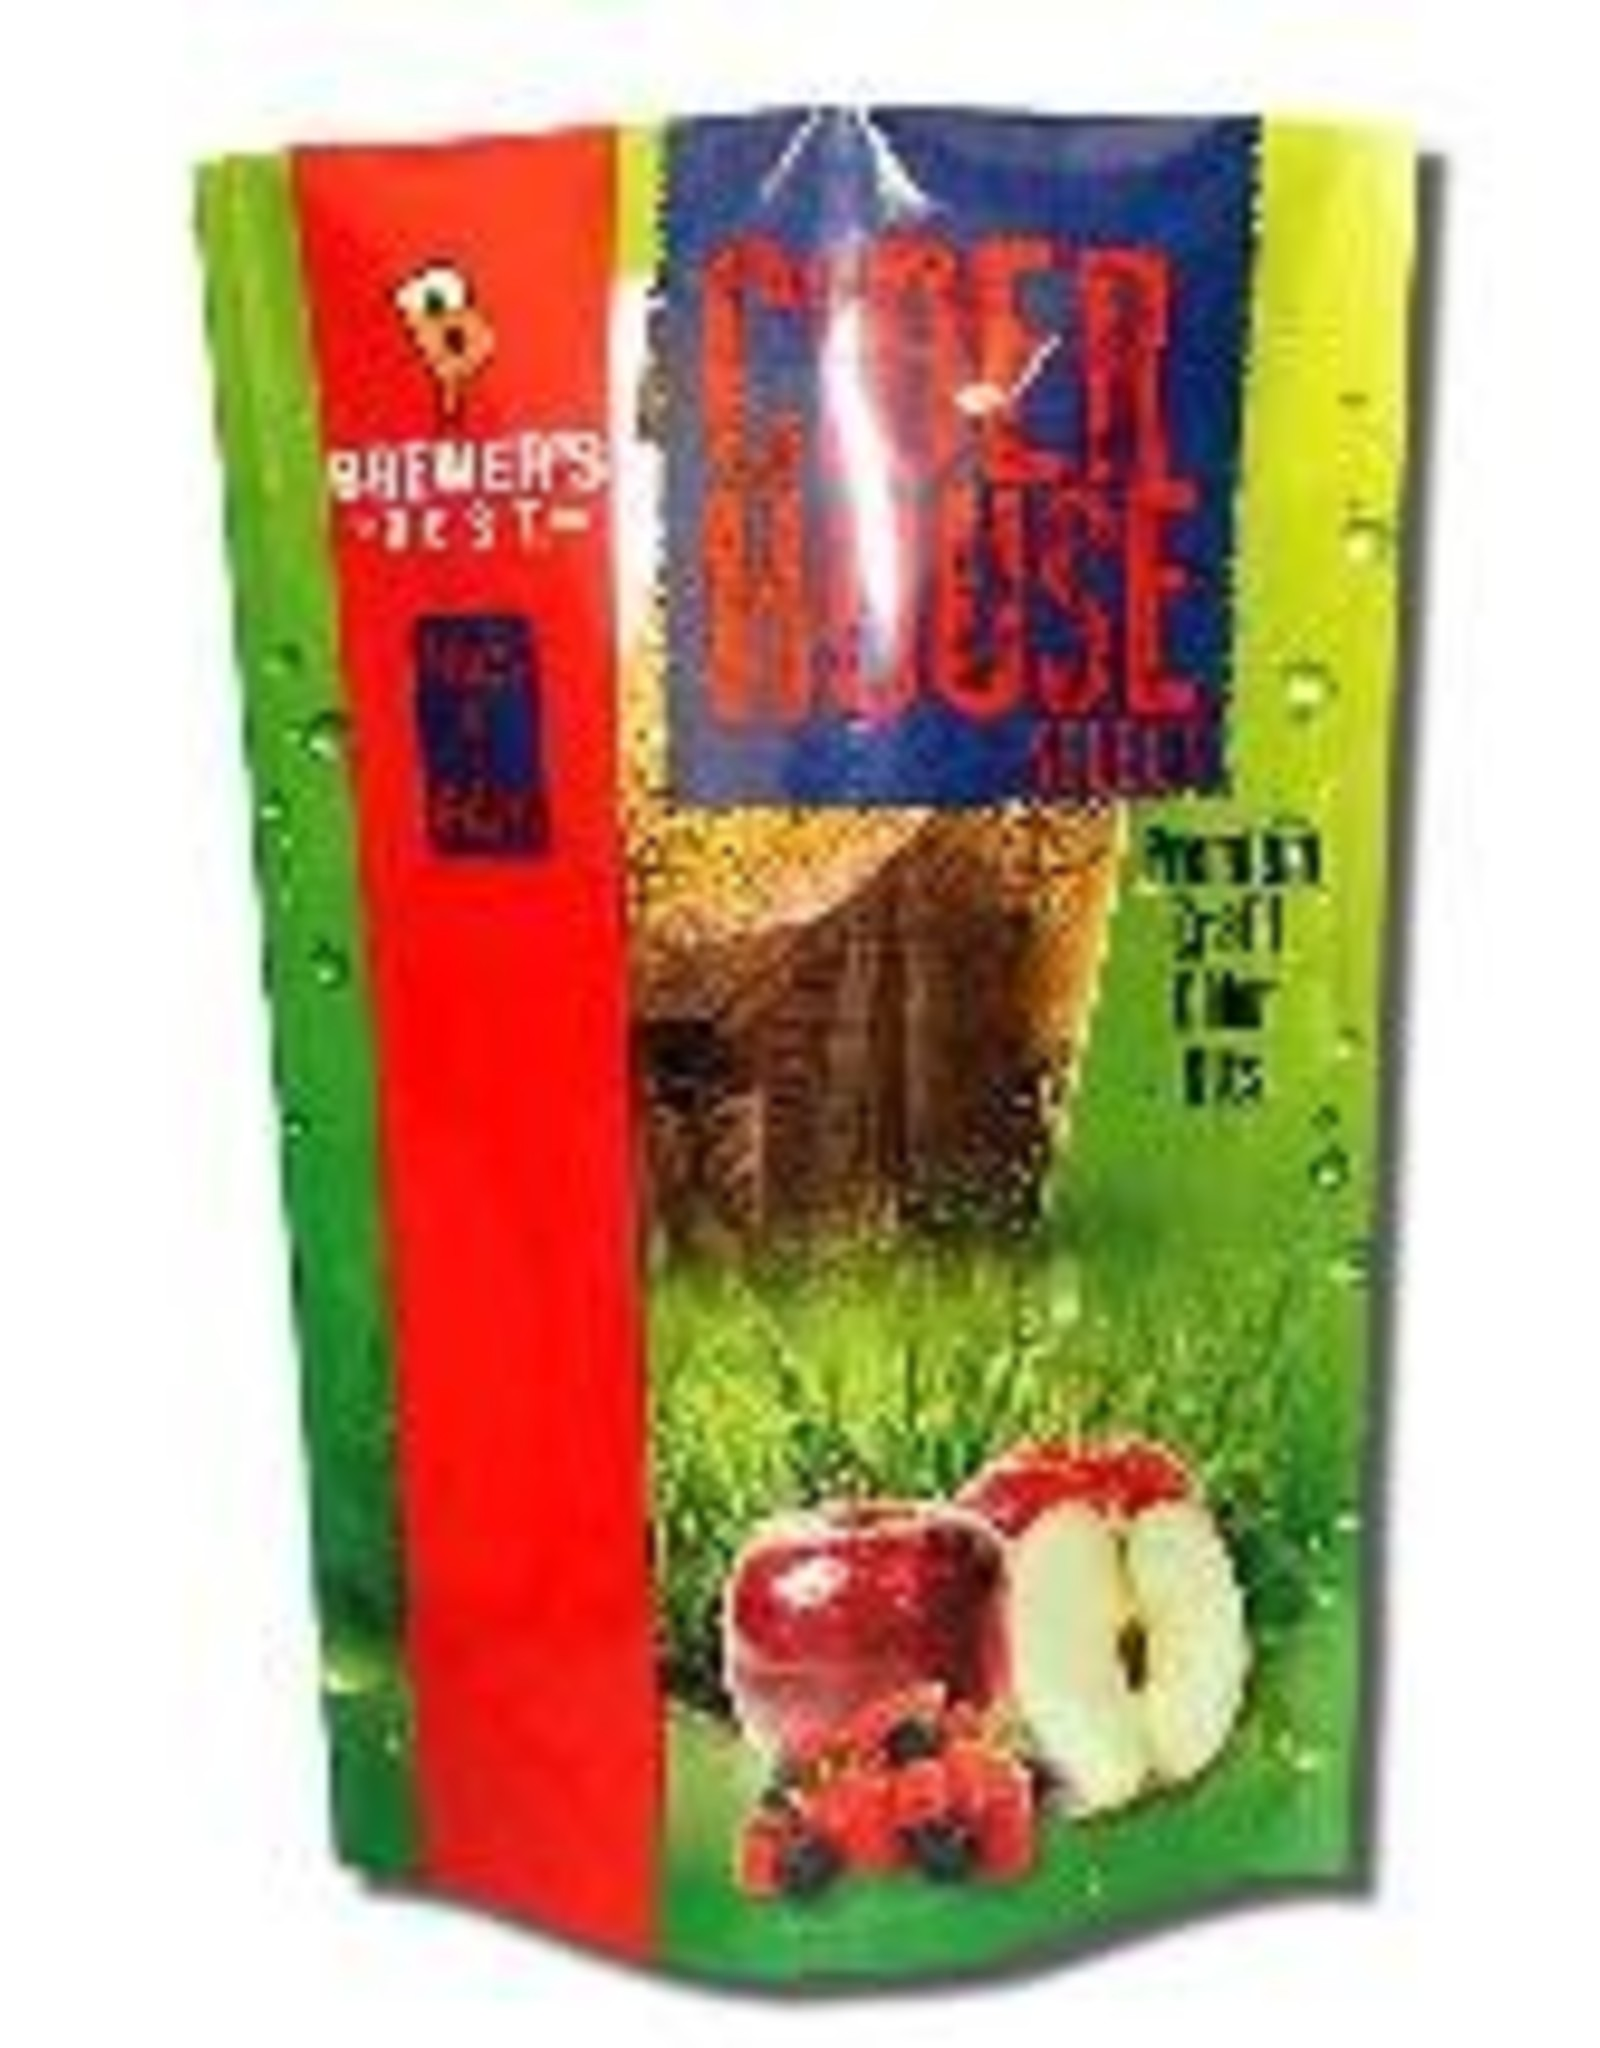 CIDER HOUSE SELECT CHERRY HARD CIDER KIT